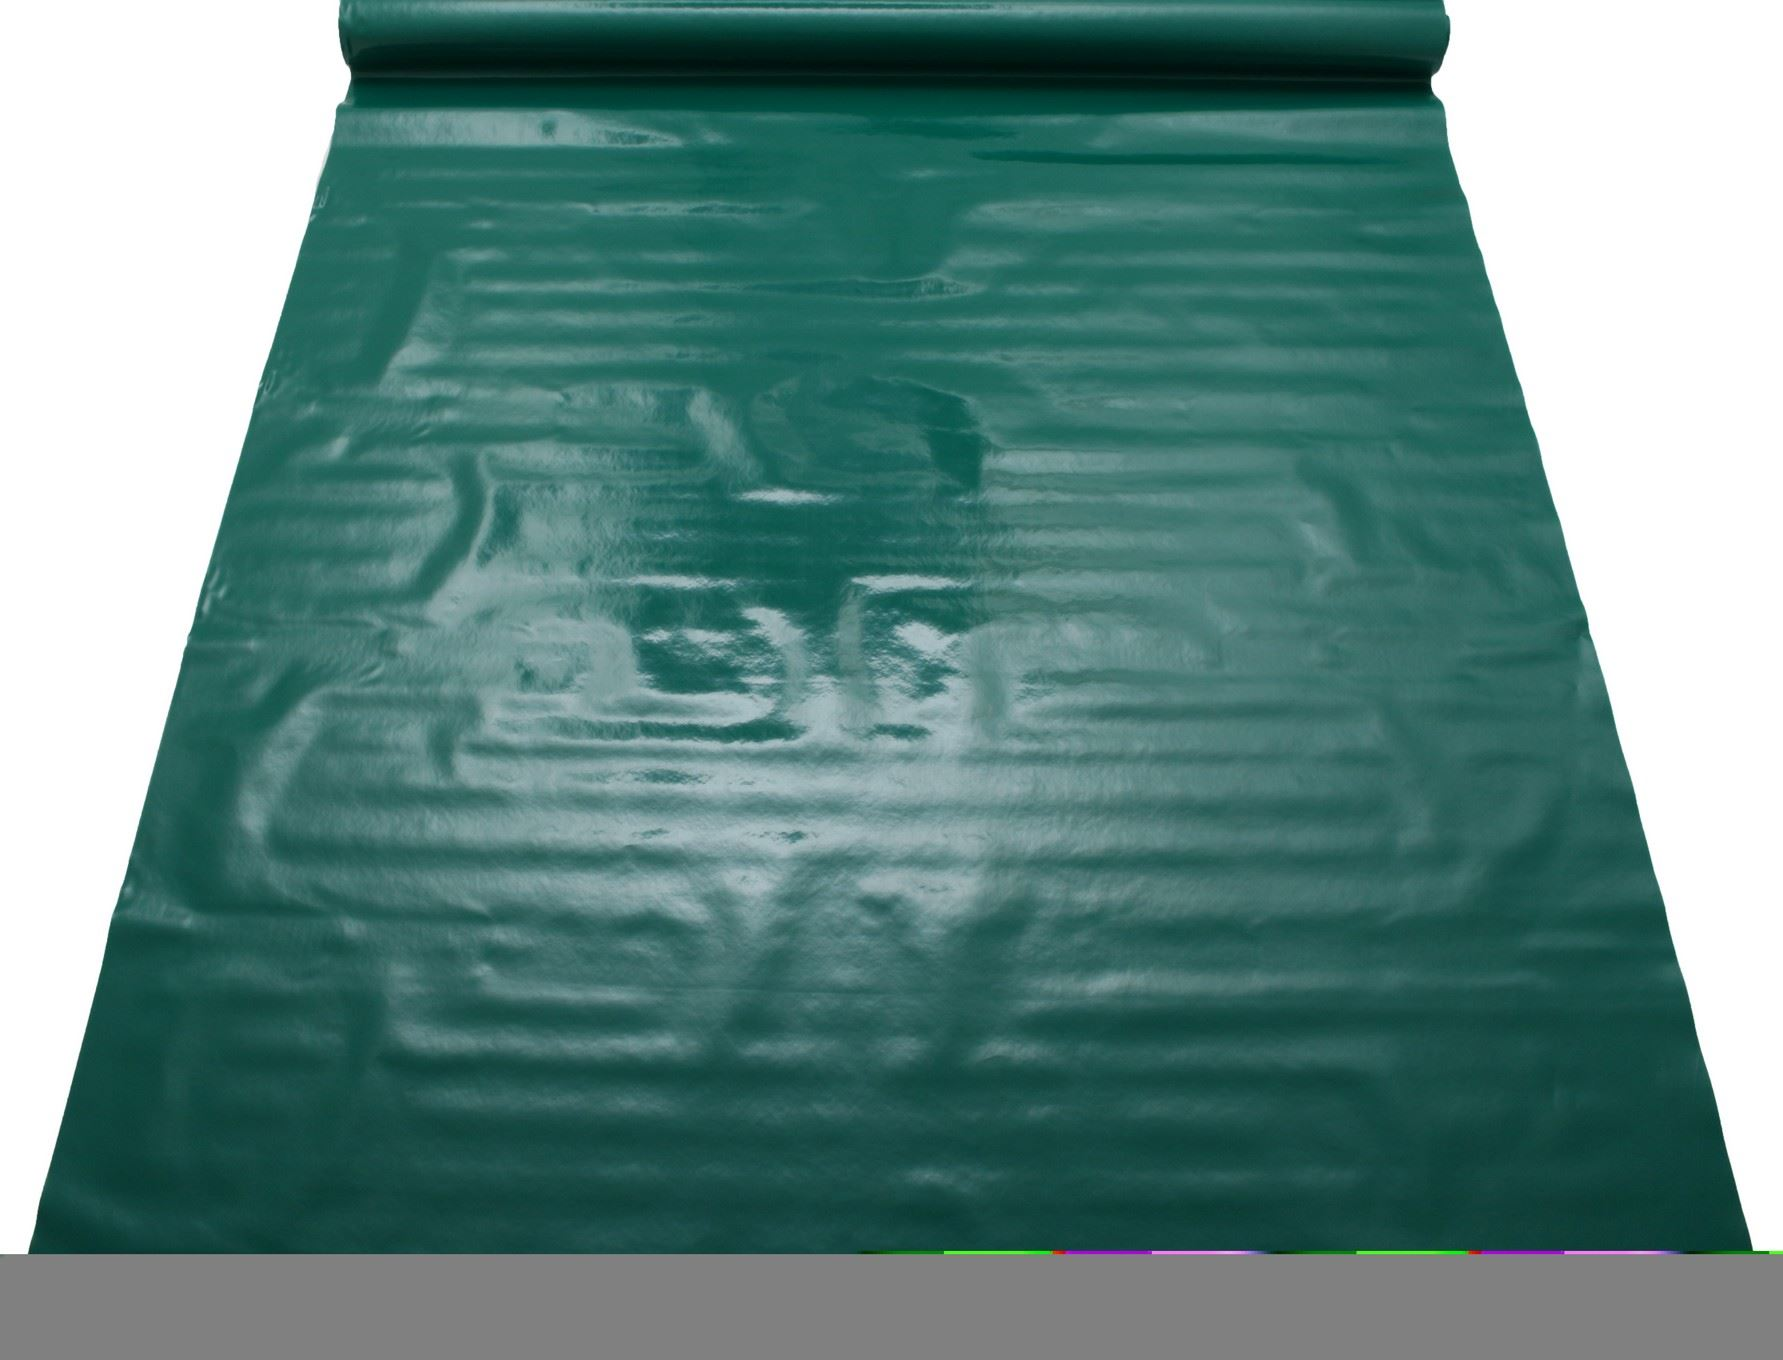 PLAIN-GLOSS-PVC-COATED-TABLECLOTH-COVERING-OUTDOOR-GARDEN-WIPECLEAN-OILCLOTH